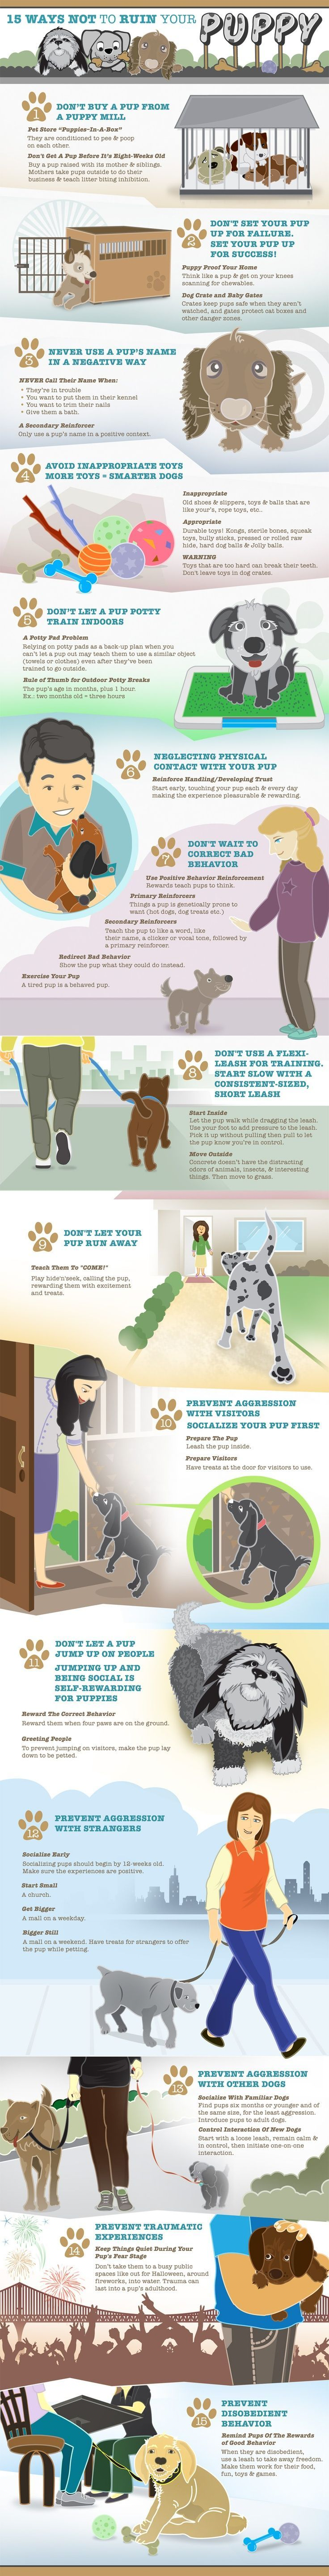 "Puppy Training Graphic A lot of good tips, but no puppy can actually be ""ruined,"" :)"